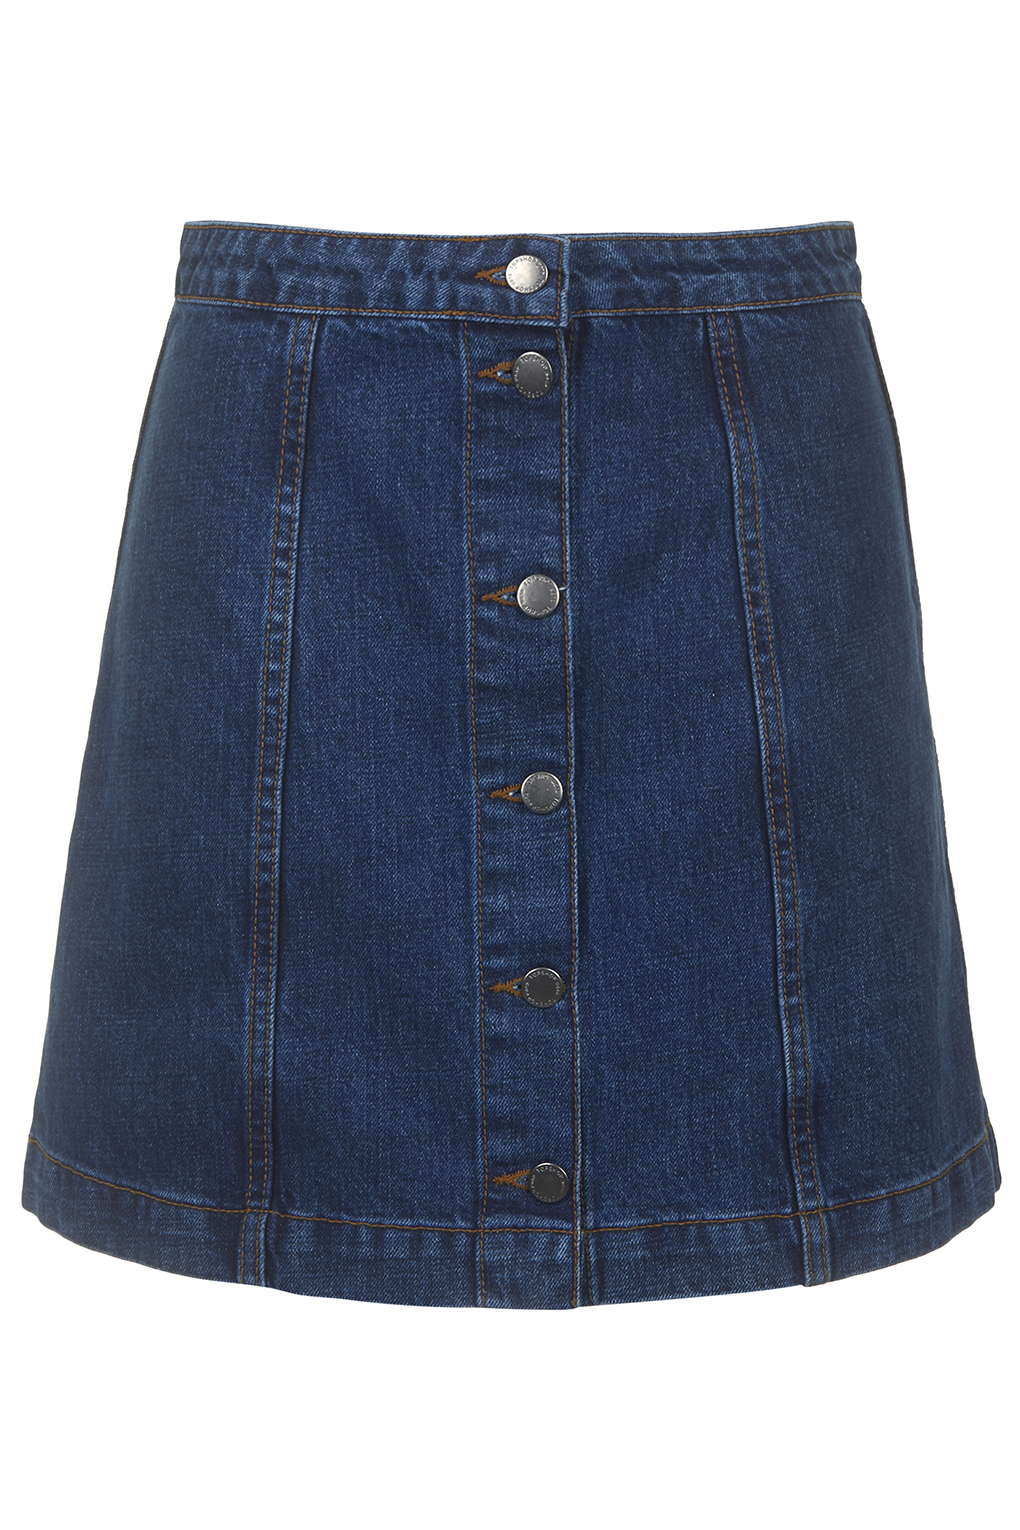 Denim Skirt – Gommap Blog